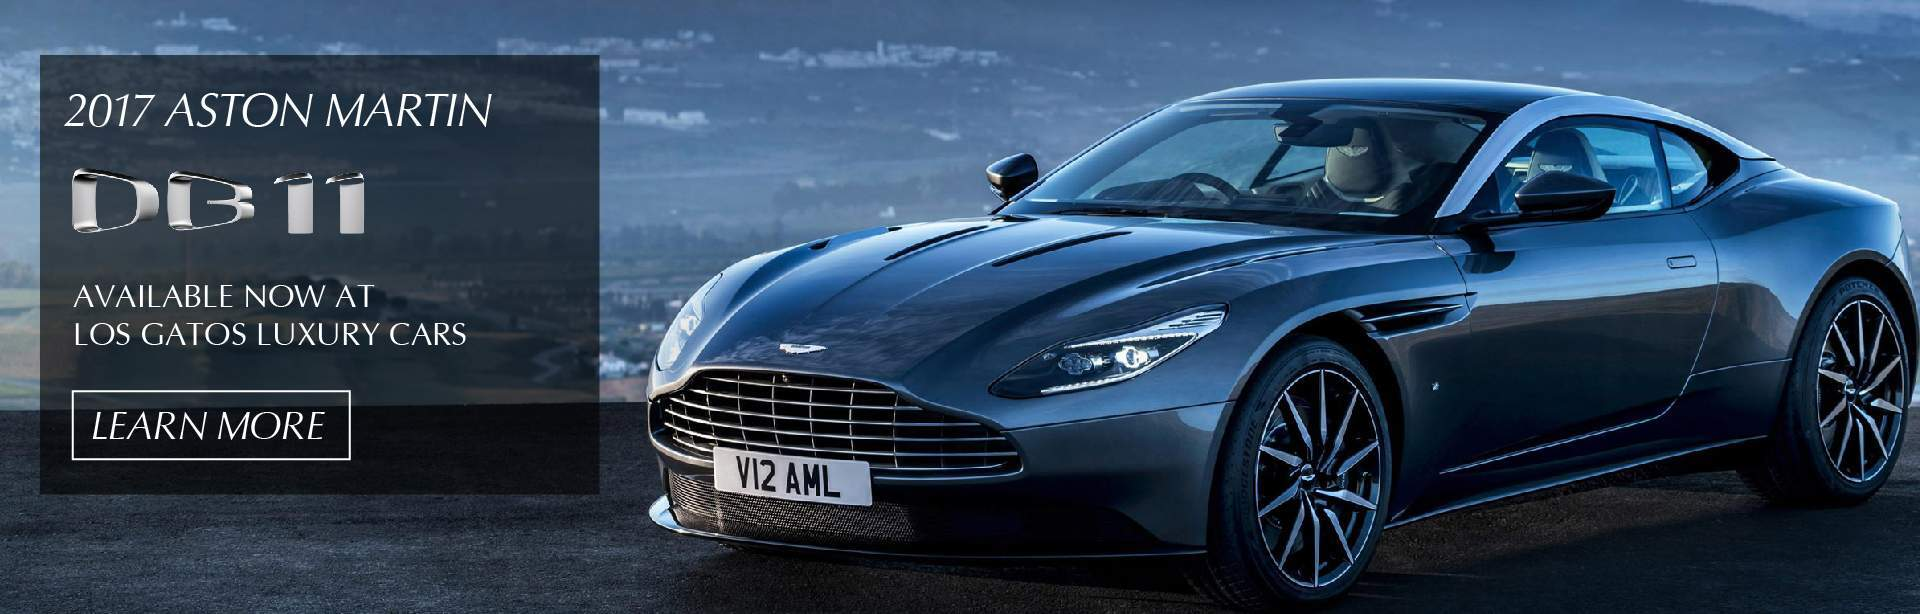 aston martin db11 lease with Losgatosluxcars on Aston Martin Car Hire Uk Luxury also 2018 Aston Martin Db11 V12 C 1063 as well 2012 Maserati Granturismo C 283 likewise 2011 Aston Martin Db9 Coupe C 3 in addition Photos.